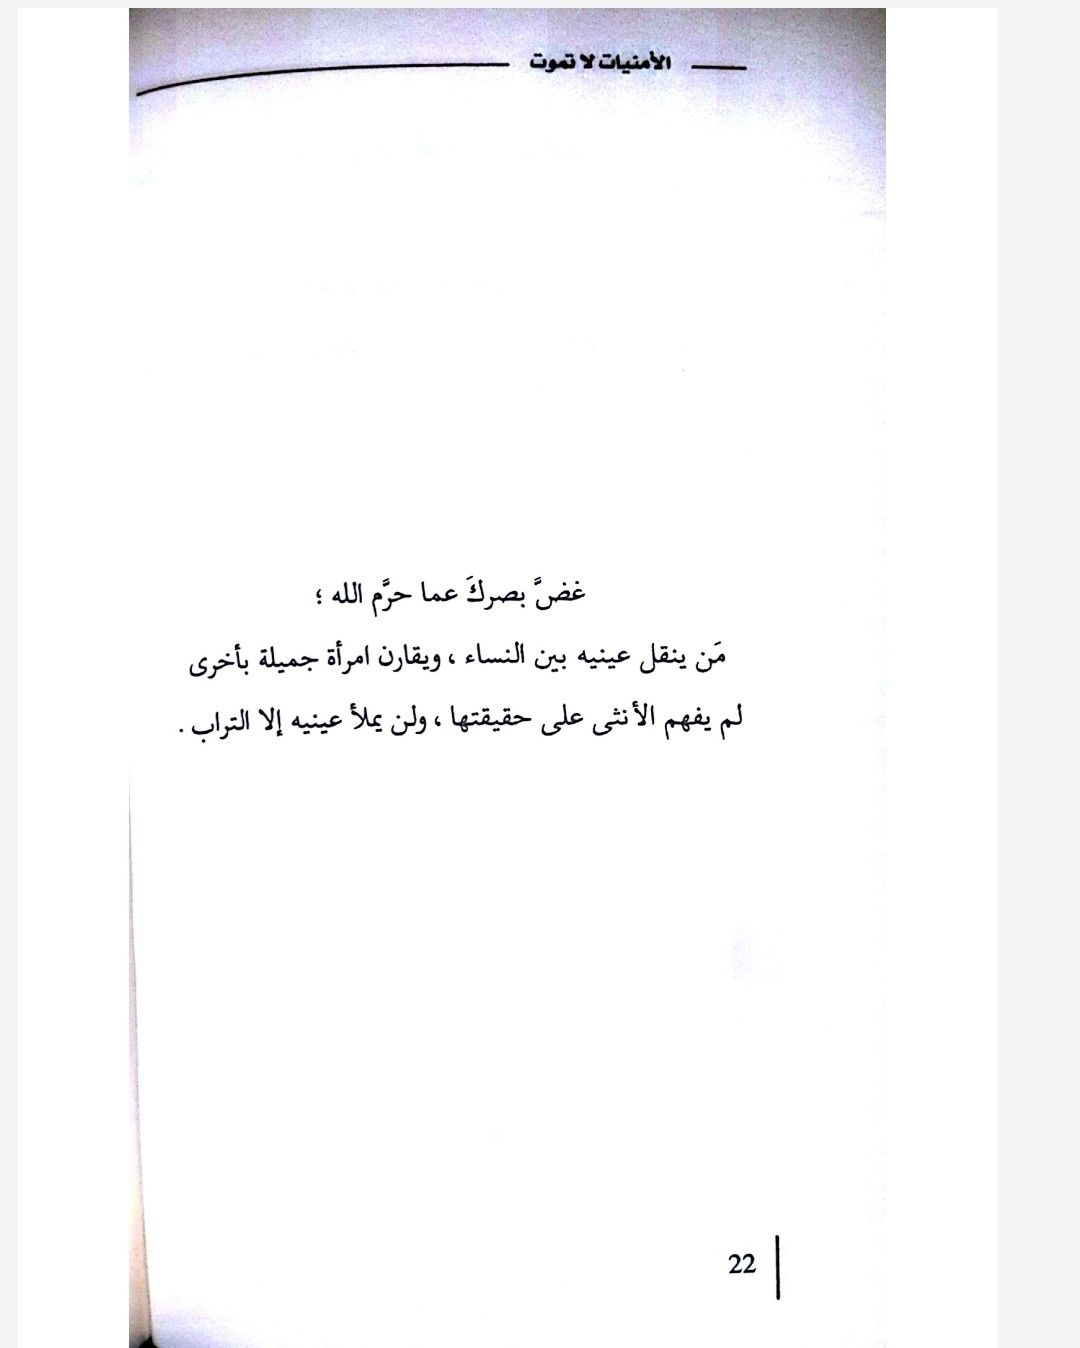 Pin By Marwa On ما هو صحيح Cards Against Humanity Cards Human